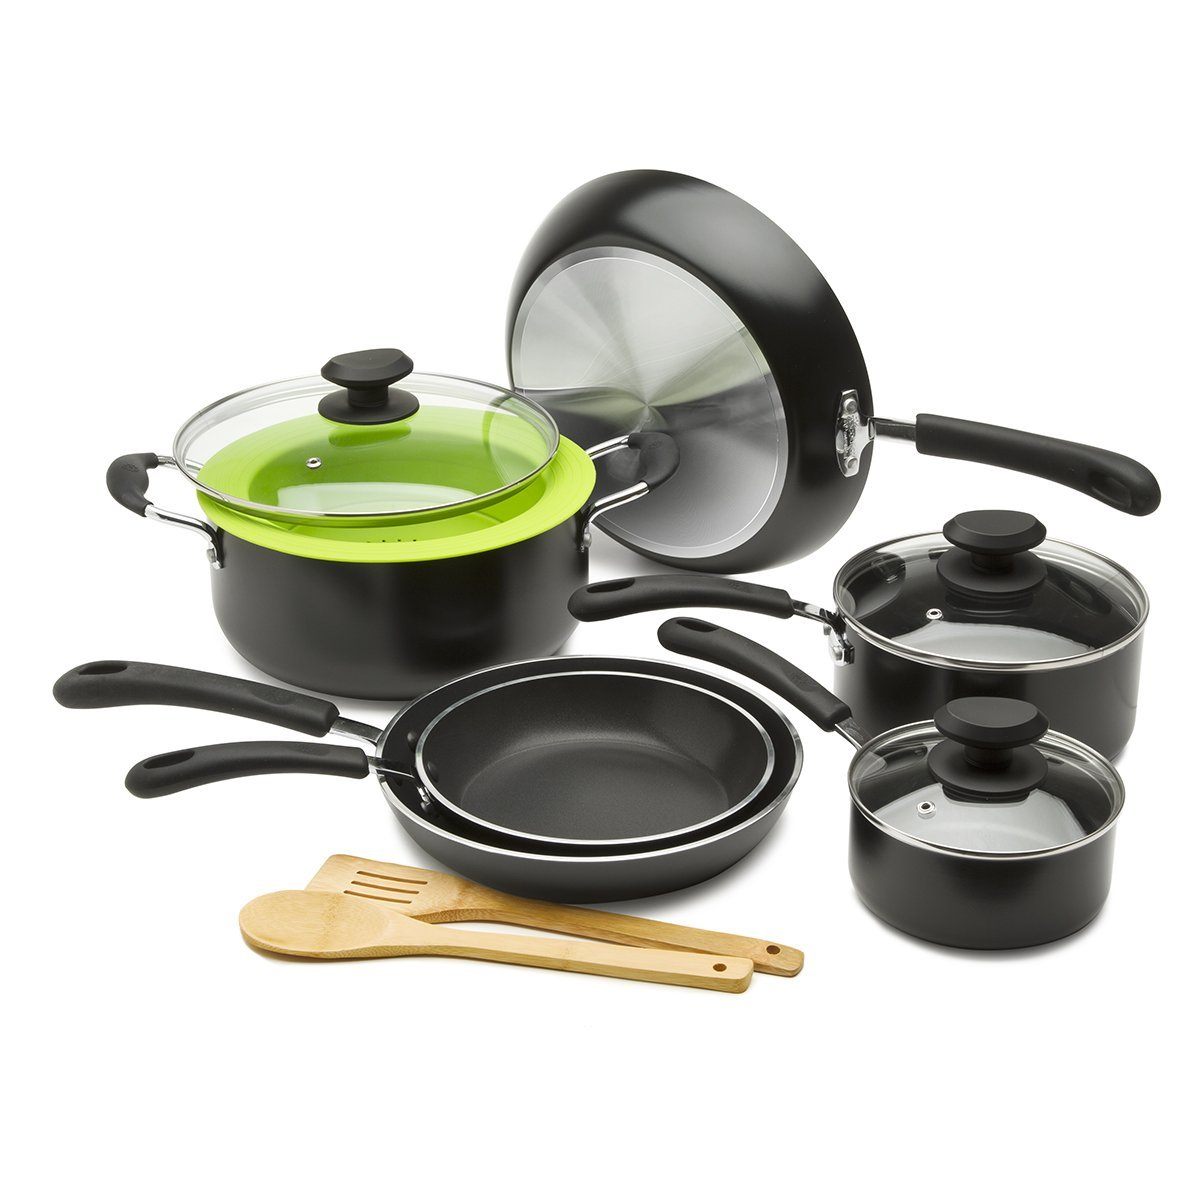 Ecolution Nonstick Cookware Set, 12 Piece - Heavy Weight, Includes Vented Lids, Steamer, Bamboo Cooking Utensils, Black 12 Piece - Heavy Weight Black Epoca Inc. EHWB-1212